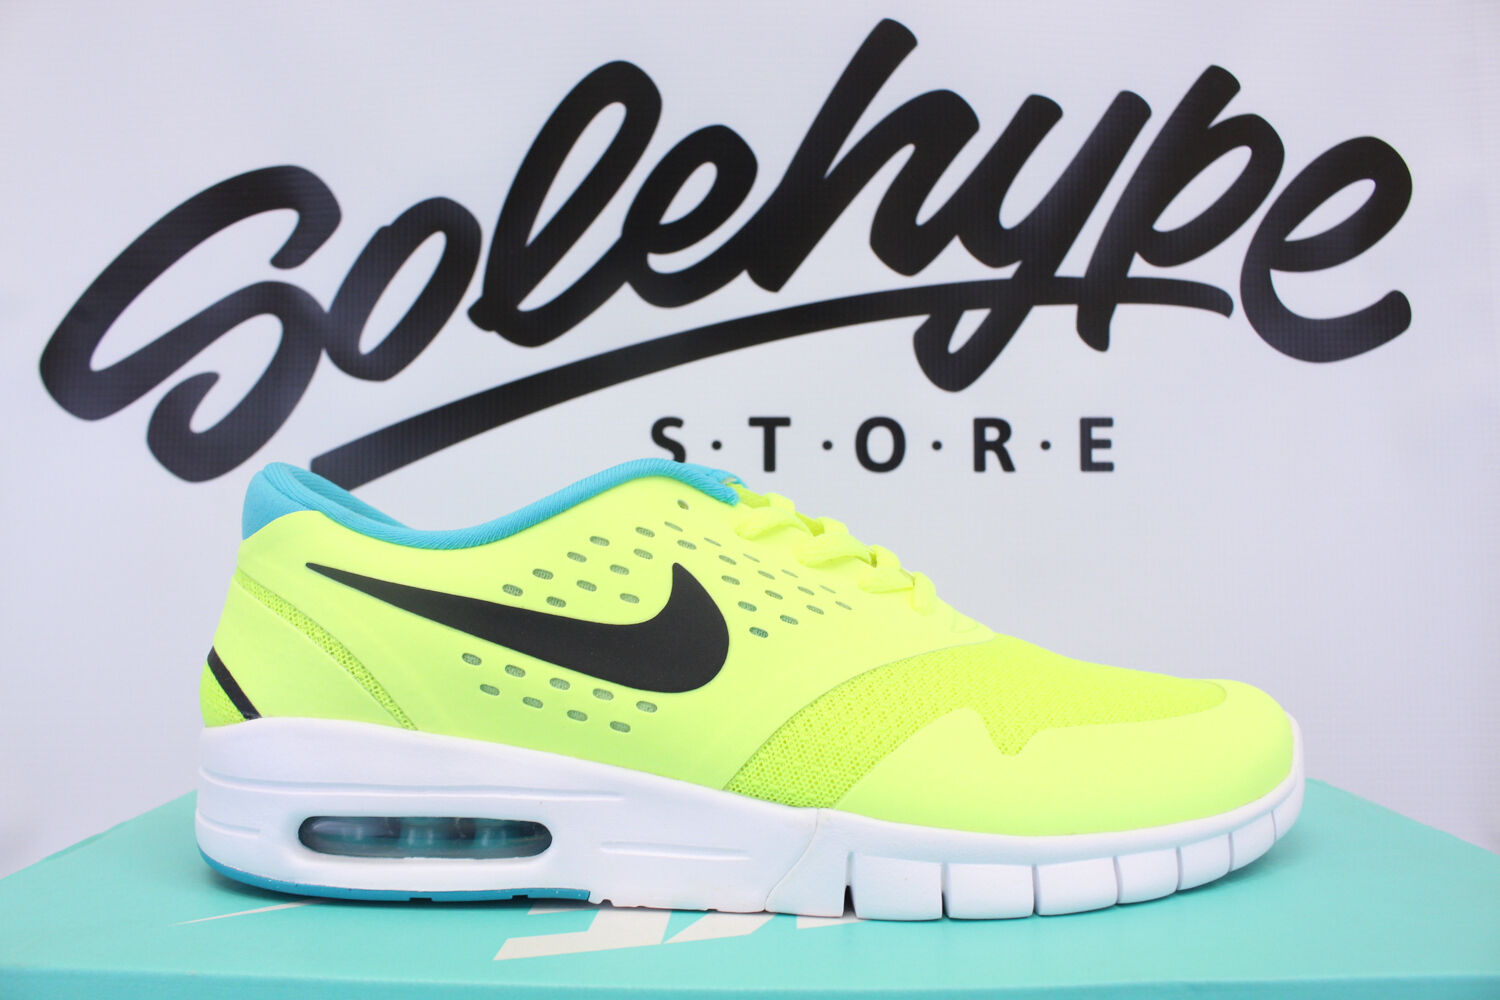 NIKE ERIC KOSTON 2 MAX SB VOLT BLACK DUSTY CACTUS 631047 703 Price reduction The latest discount shoes for men and women Comfortable and good-looking